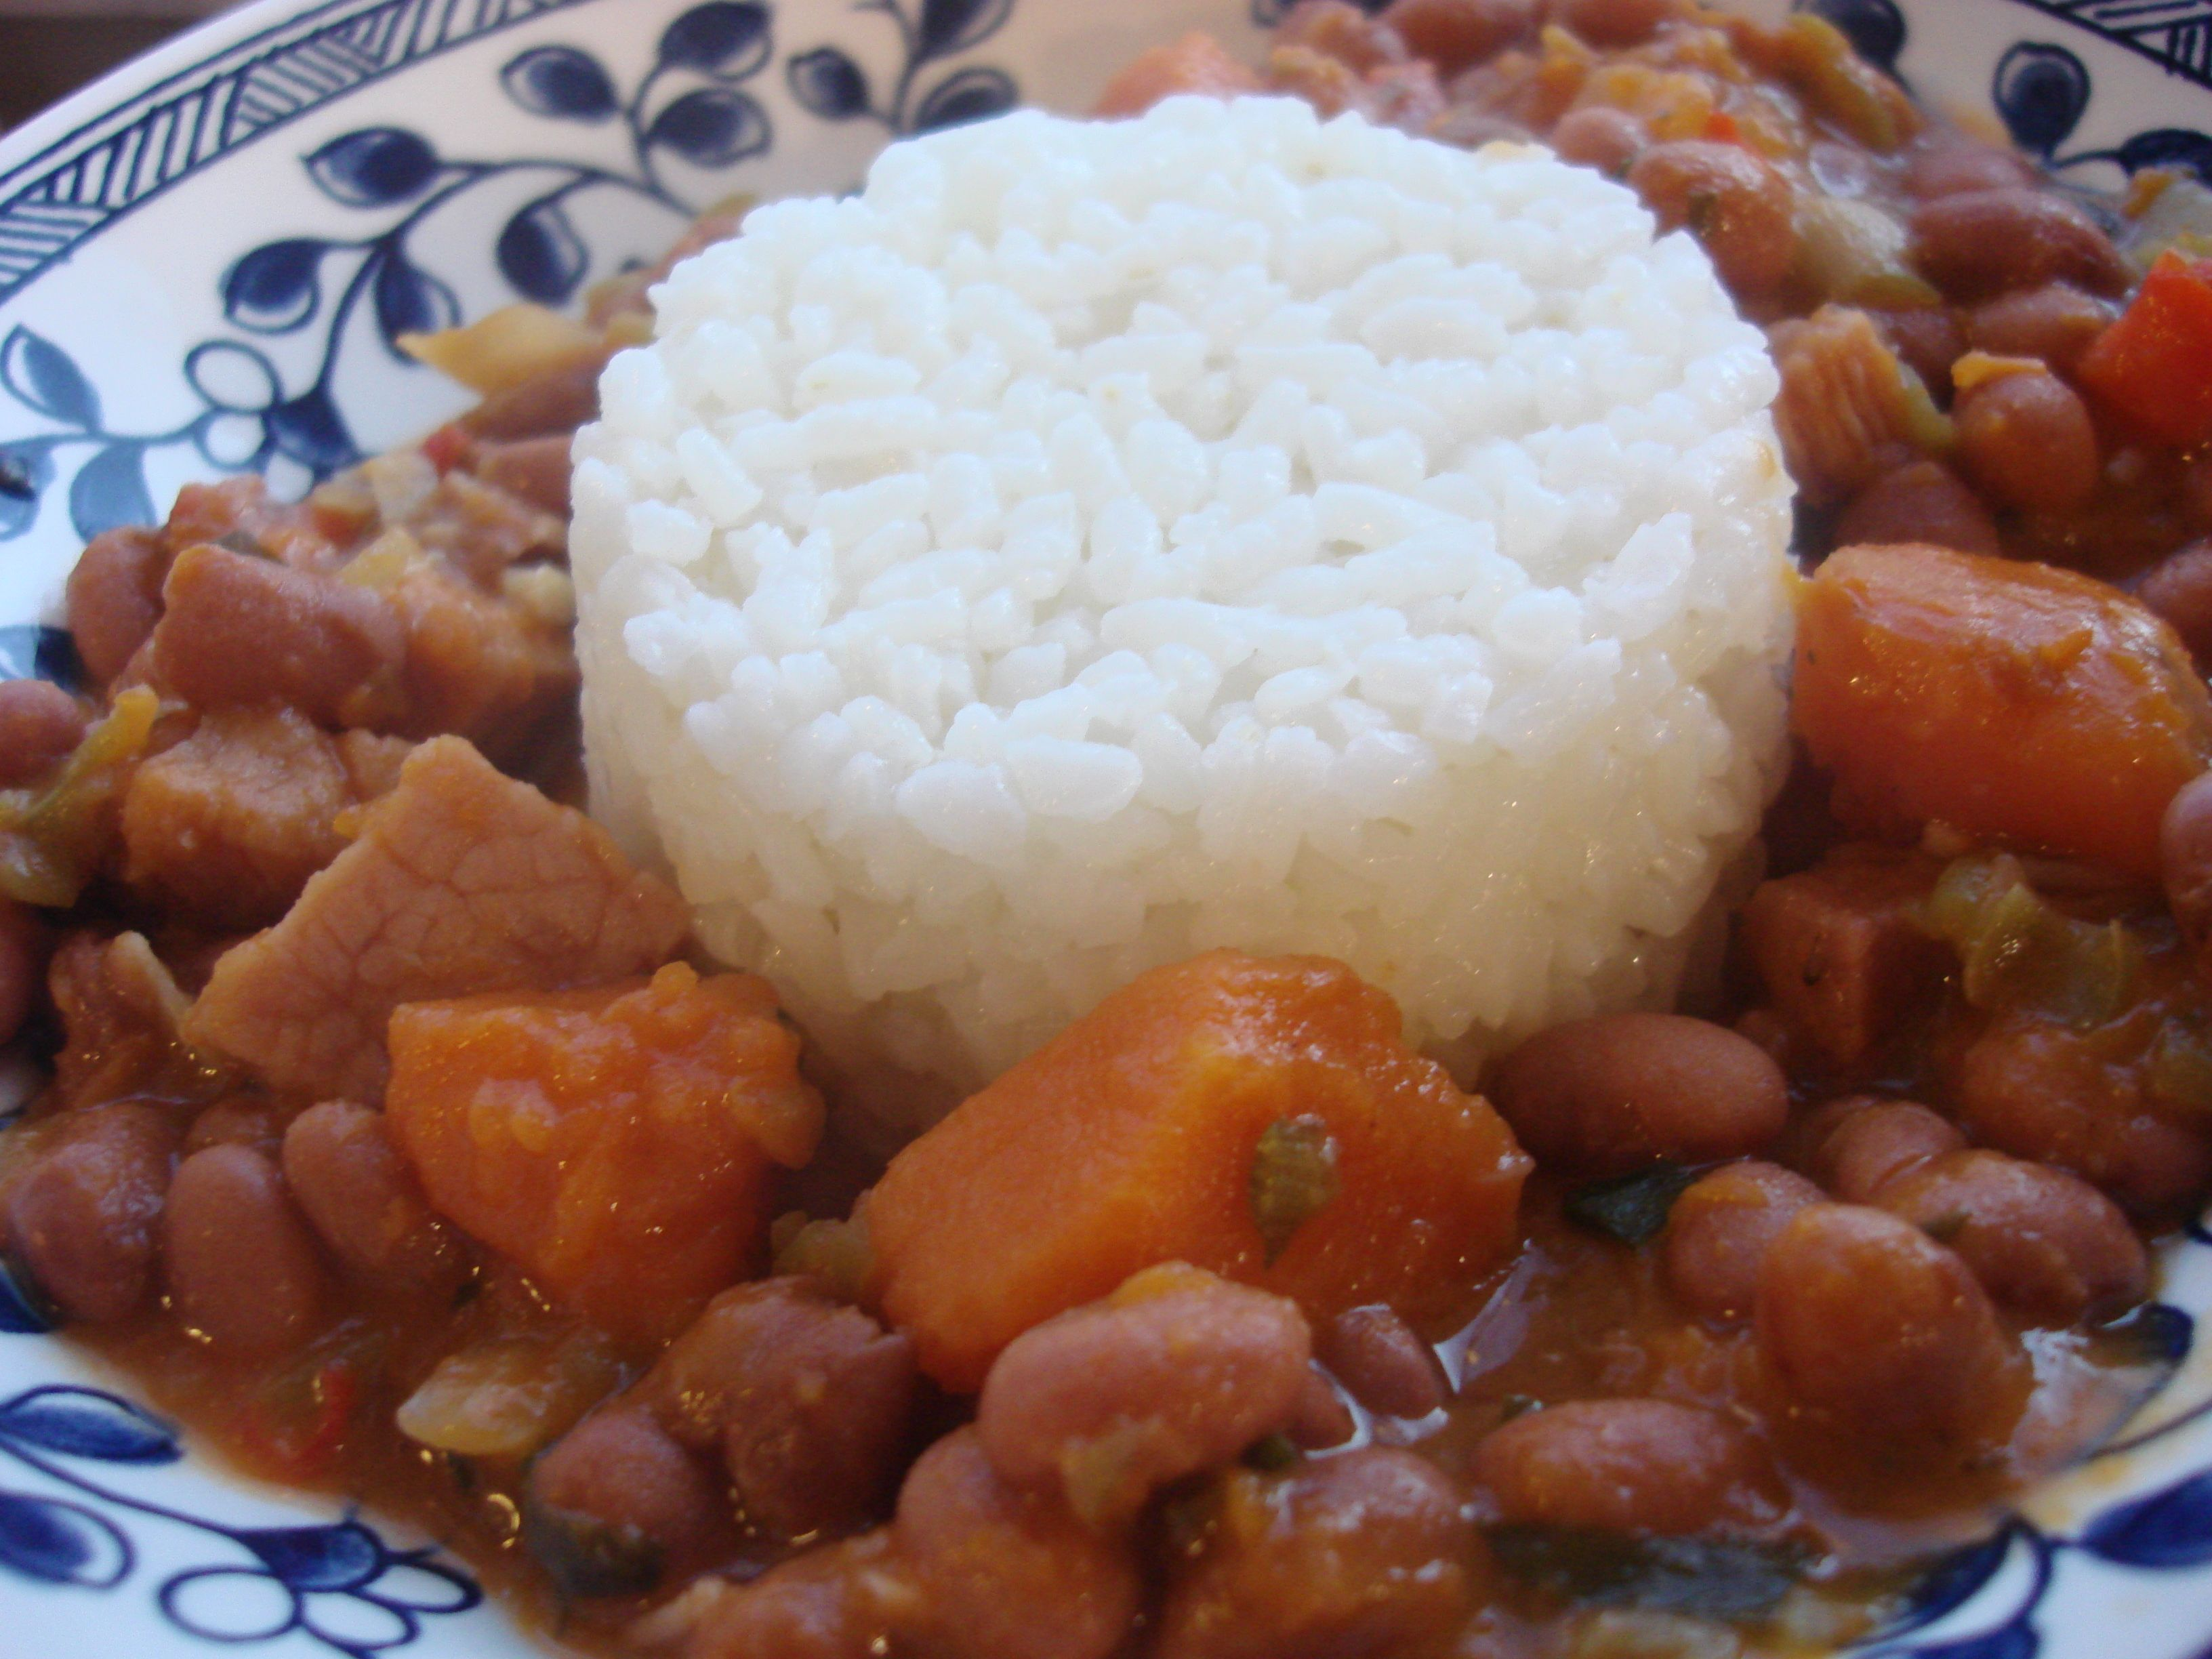 Puerto Rican Rice And Beans Arroz Con Habichuelas Puerto Rican Recipes Caribbean Recipes Mexican Food Recipes